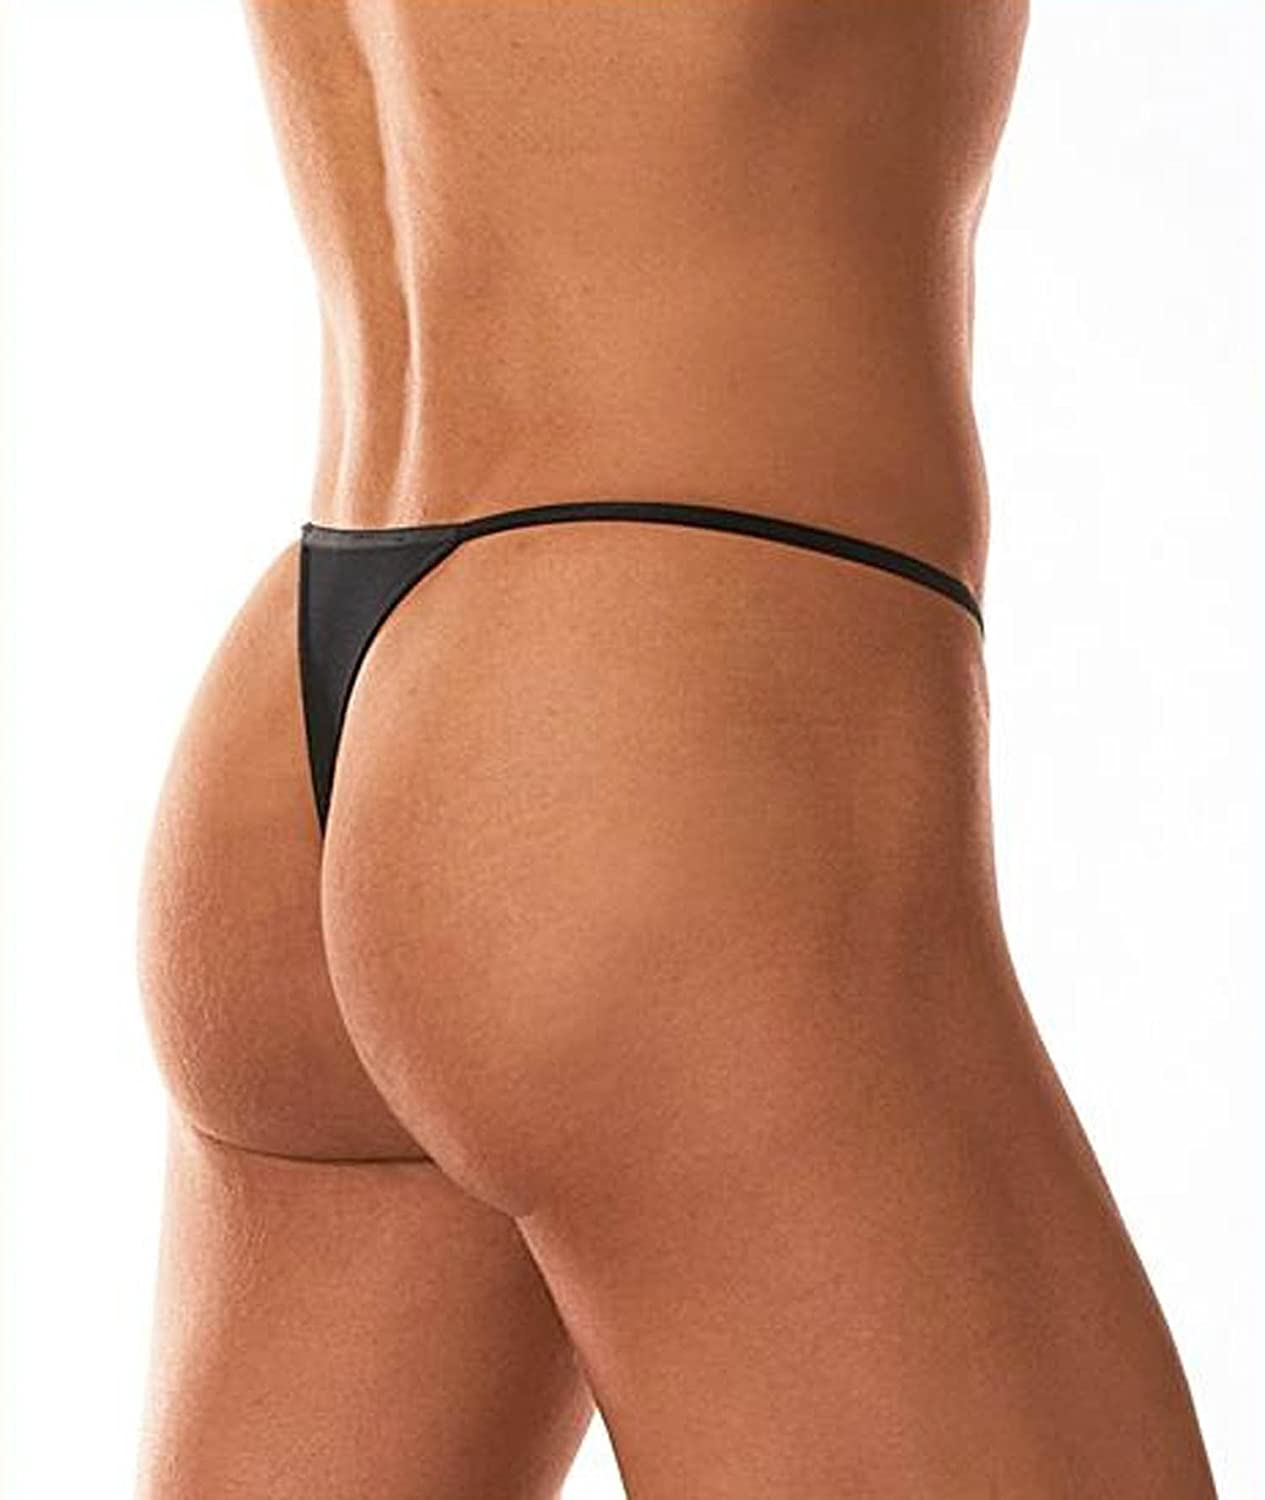 9a553ab3f7d1 HOM Plume 2 Pack Designer Mens Sexy Microfibre Lycra G String Tanga Thong  Pouch Underwear Black X large: Amazon.co.uk: Clothing